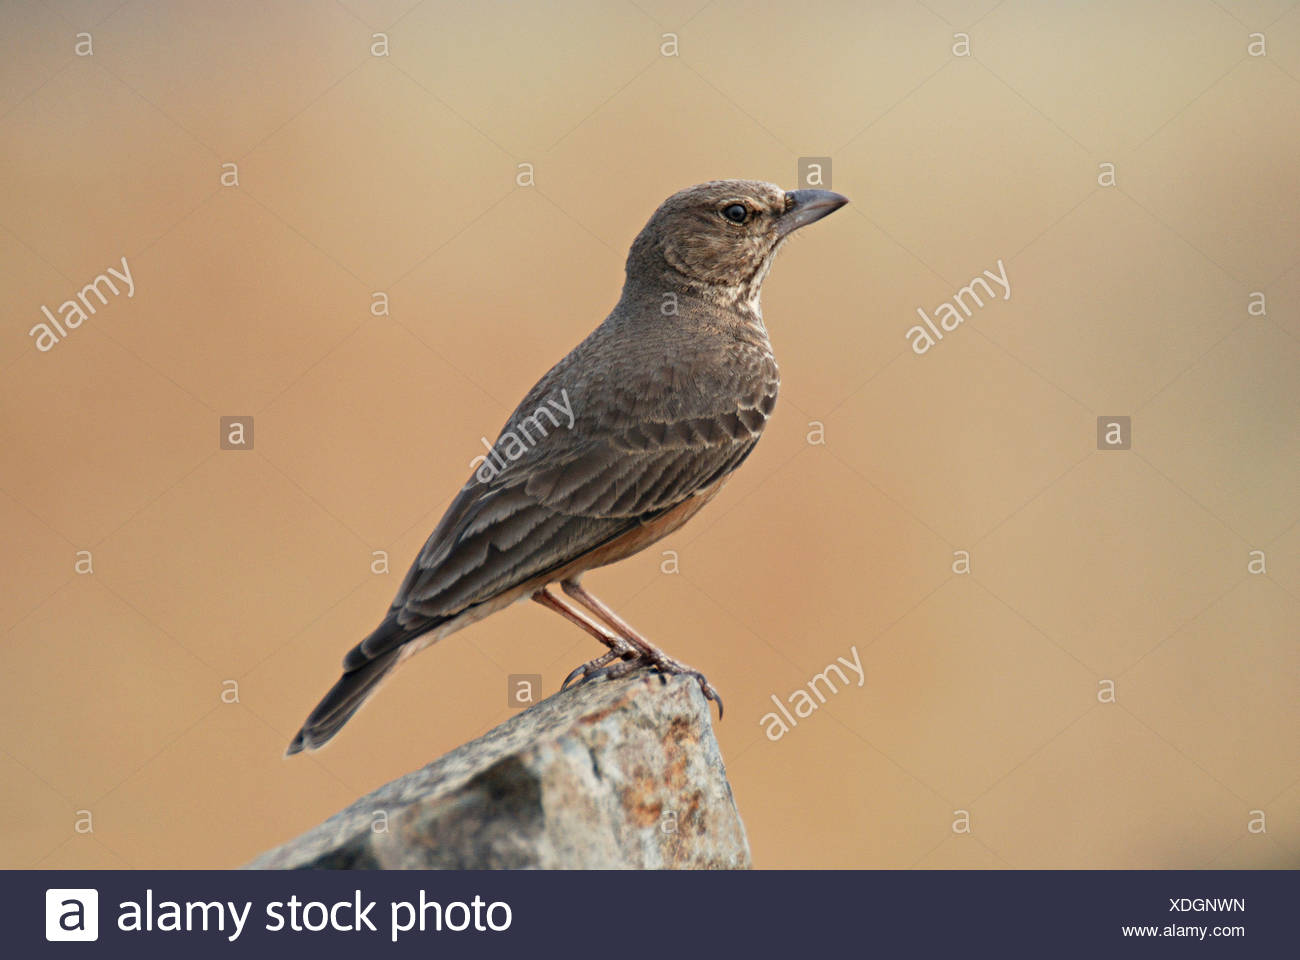 The Rufous-tailed Lark, Ammomanes phoenicurus, is a ground bird found in open stony country and low rocky hills in India. Pune - Stock Image